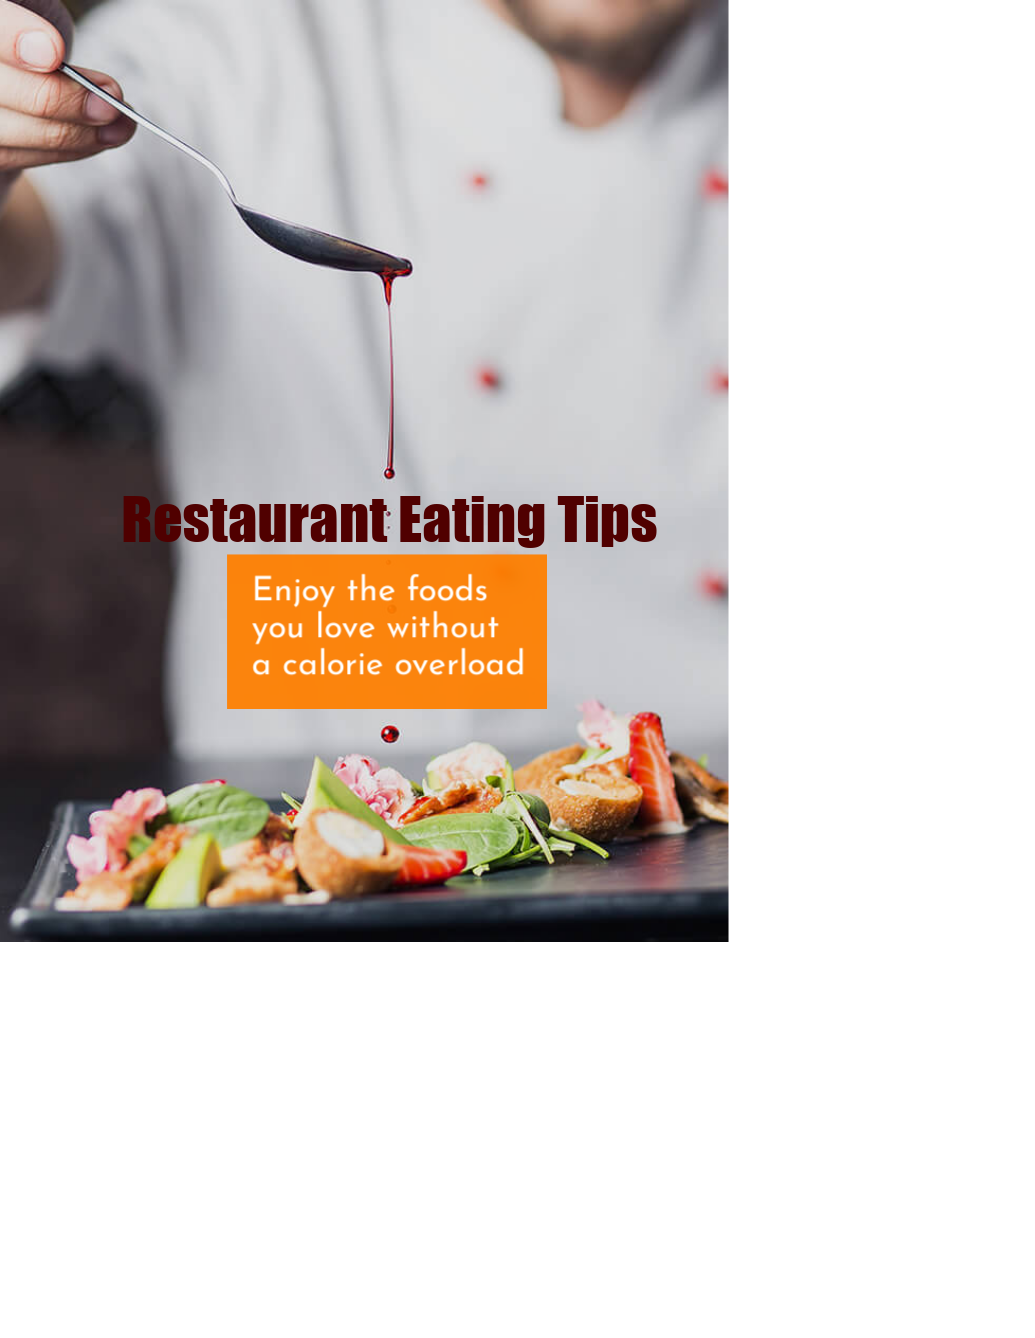 Restaurant Eating Tips: Enjoy the foods you love without a calorie overload  - Dlyted - Food Overload PNG